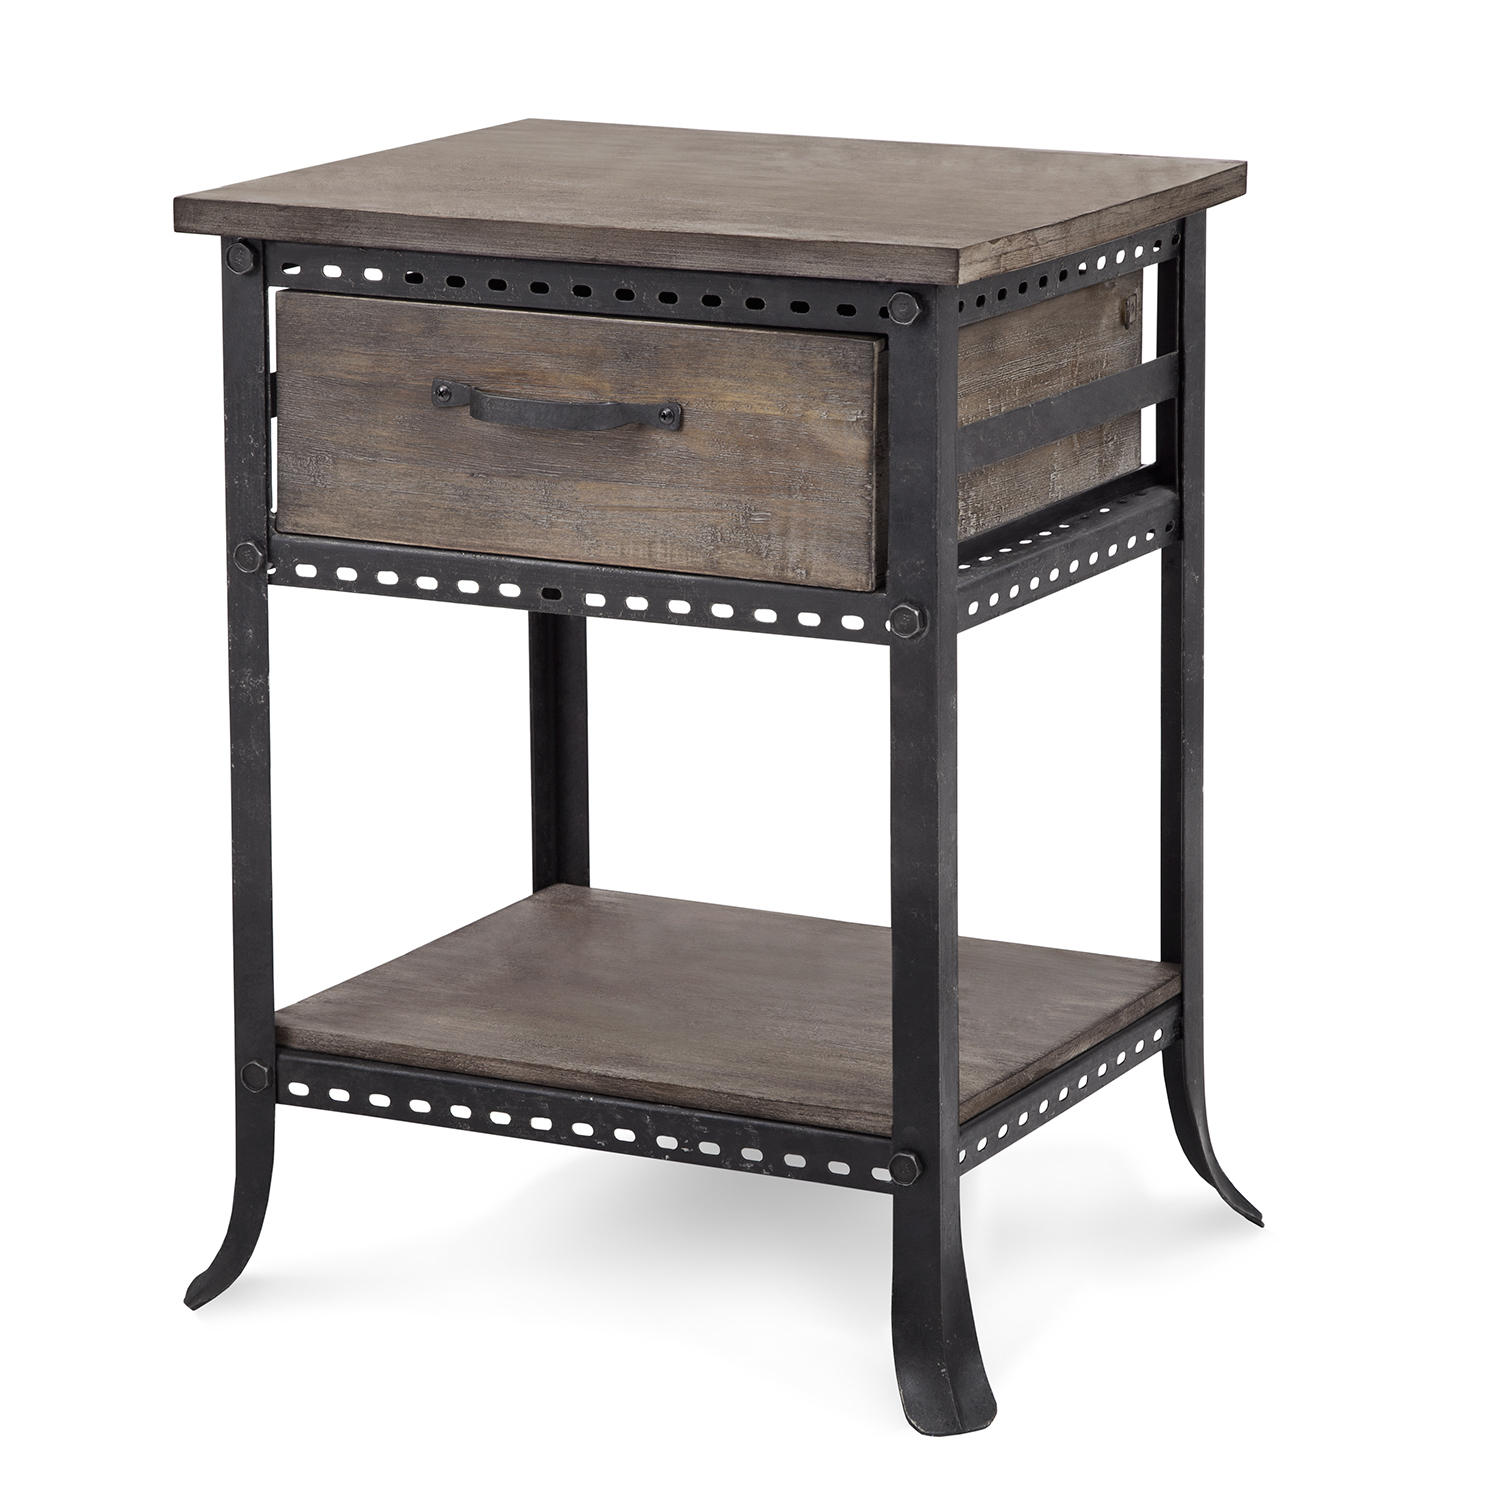 renate cirque accent end table with drawer free shipping unique tables today silver bedroom lamps folding brass oriental curved glass coffee trestle dining set tool storage